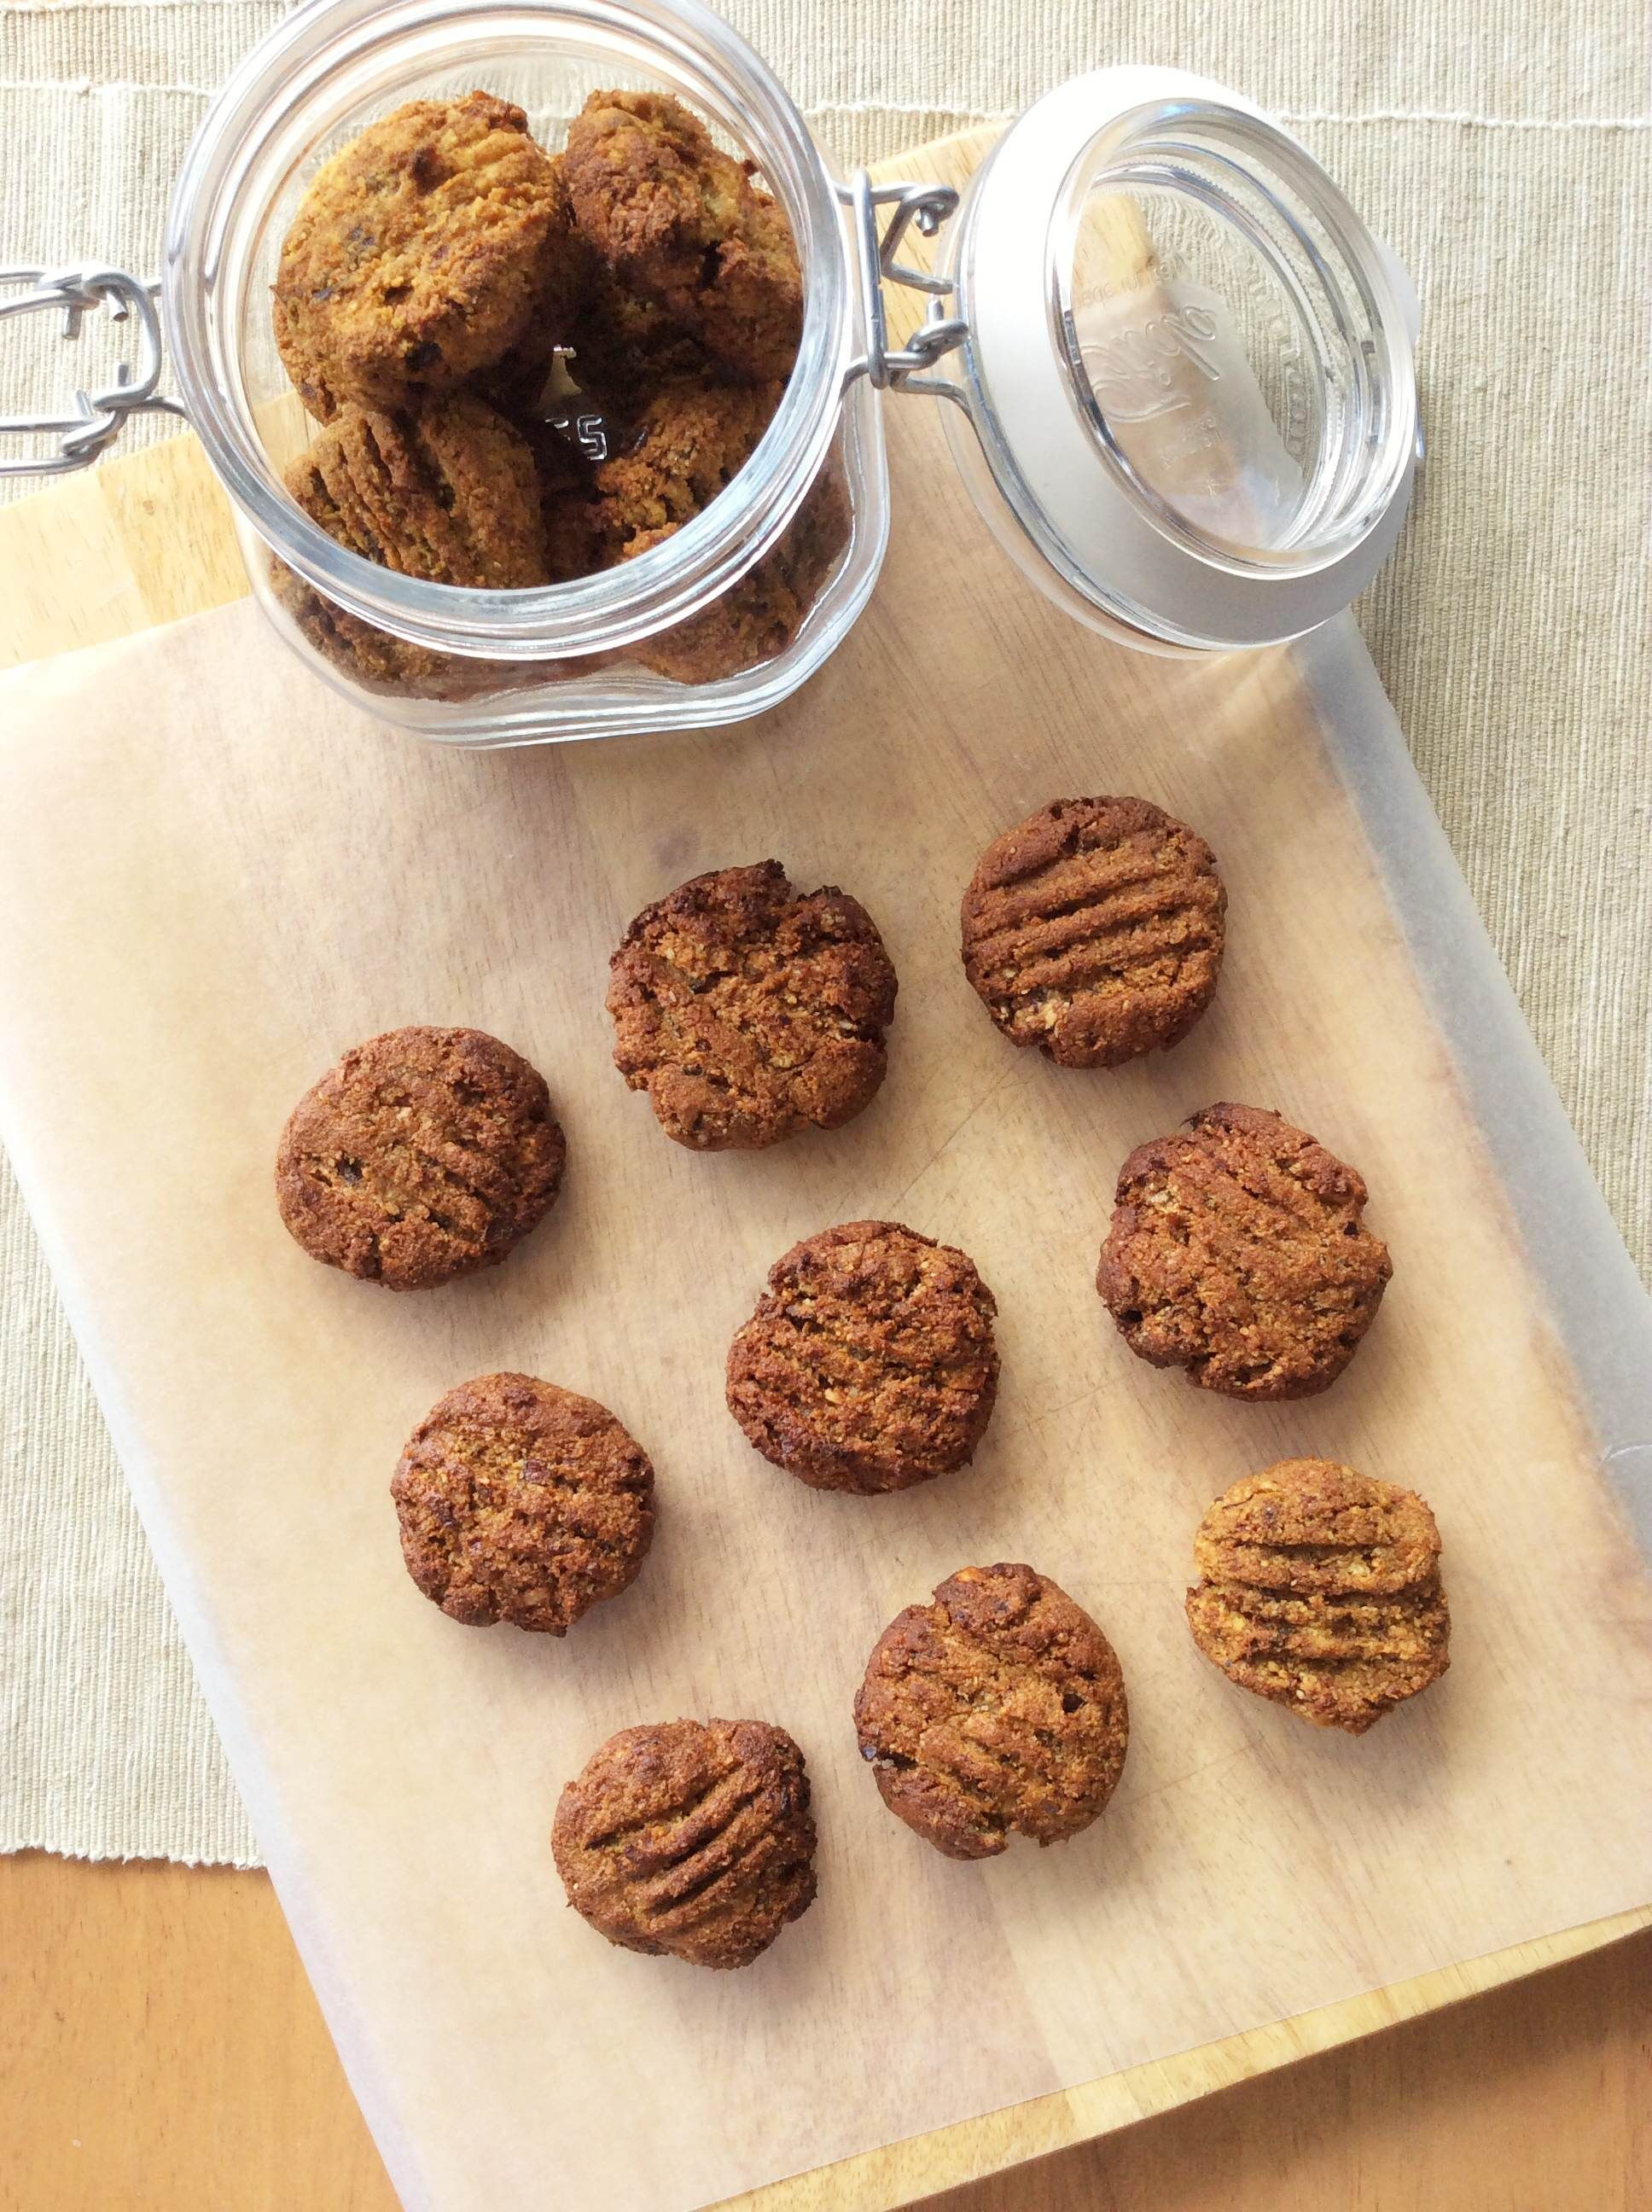 In this care, these cookies are sweetened with full dates.